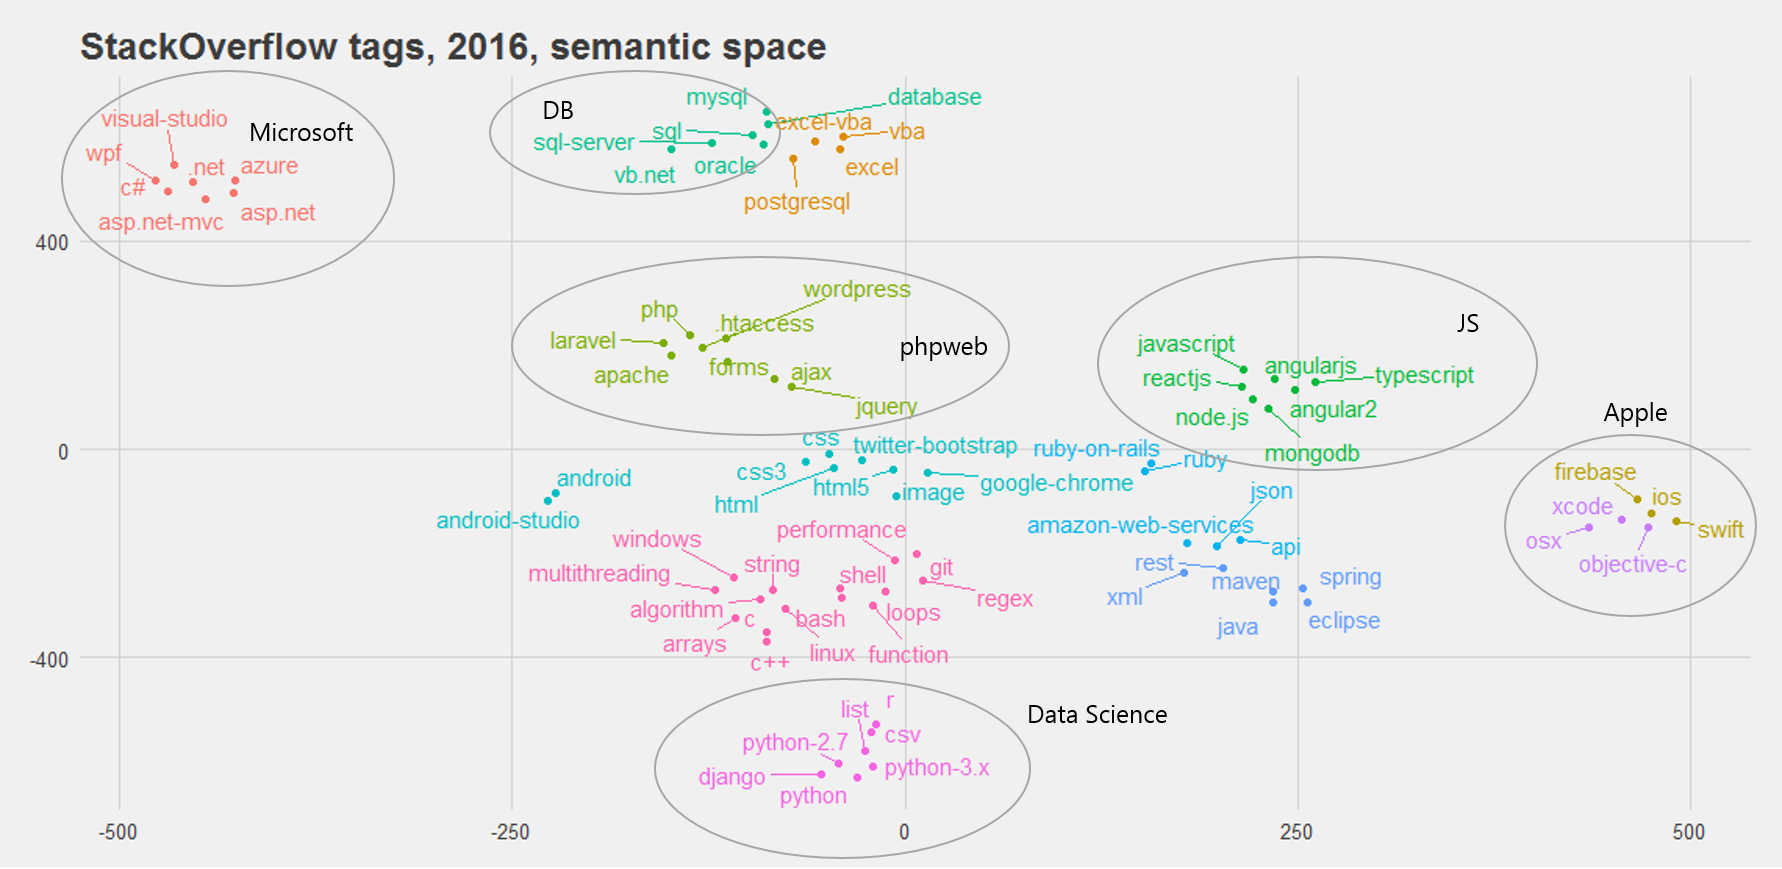 Data scientists what do they know do they know things lets t sne 2d embedding of the latent semantic space representation of the 50 most frequent tags in the stackoverflow dataset k means clusters are represented pooptronica